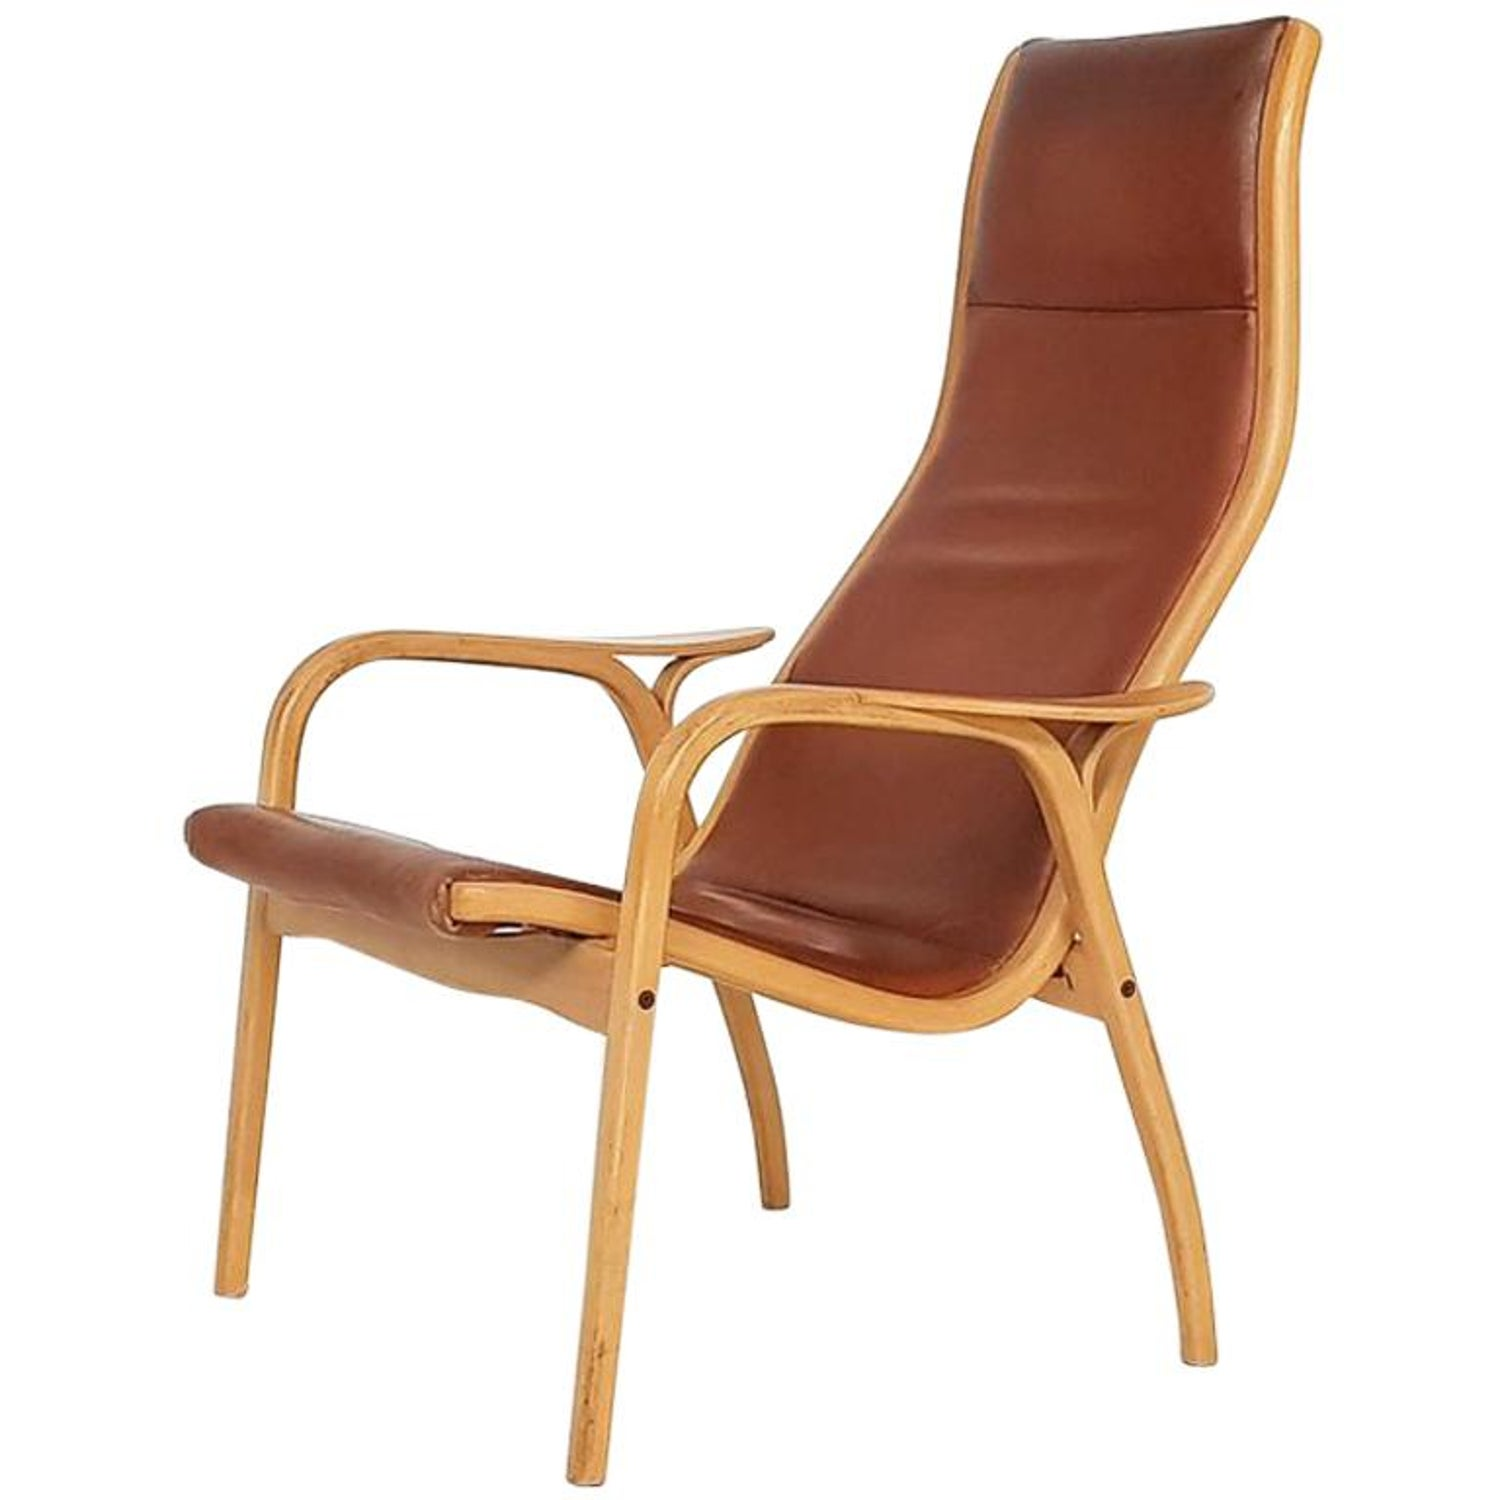 Incredible Swedese Lounge Chairs 12 For Sale At 1Stdibs Creativecarmelina Interior Chair Design Creativecarmelinacom